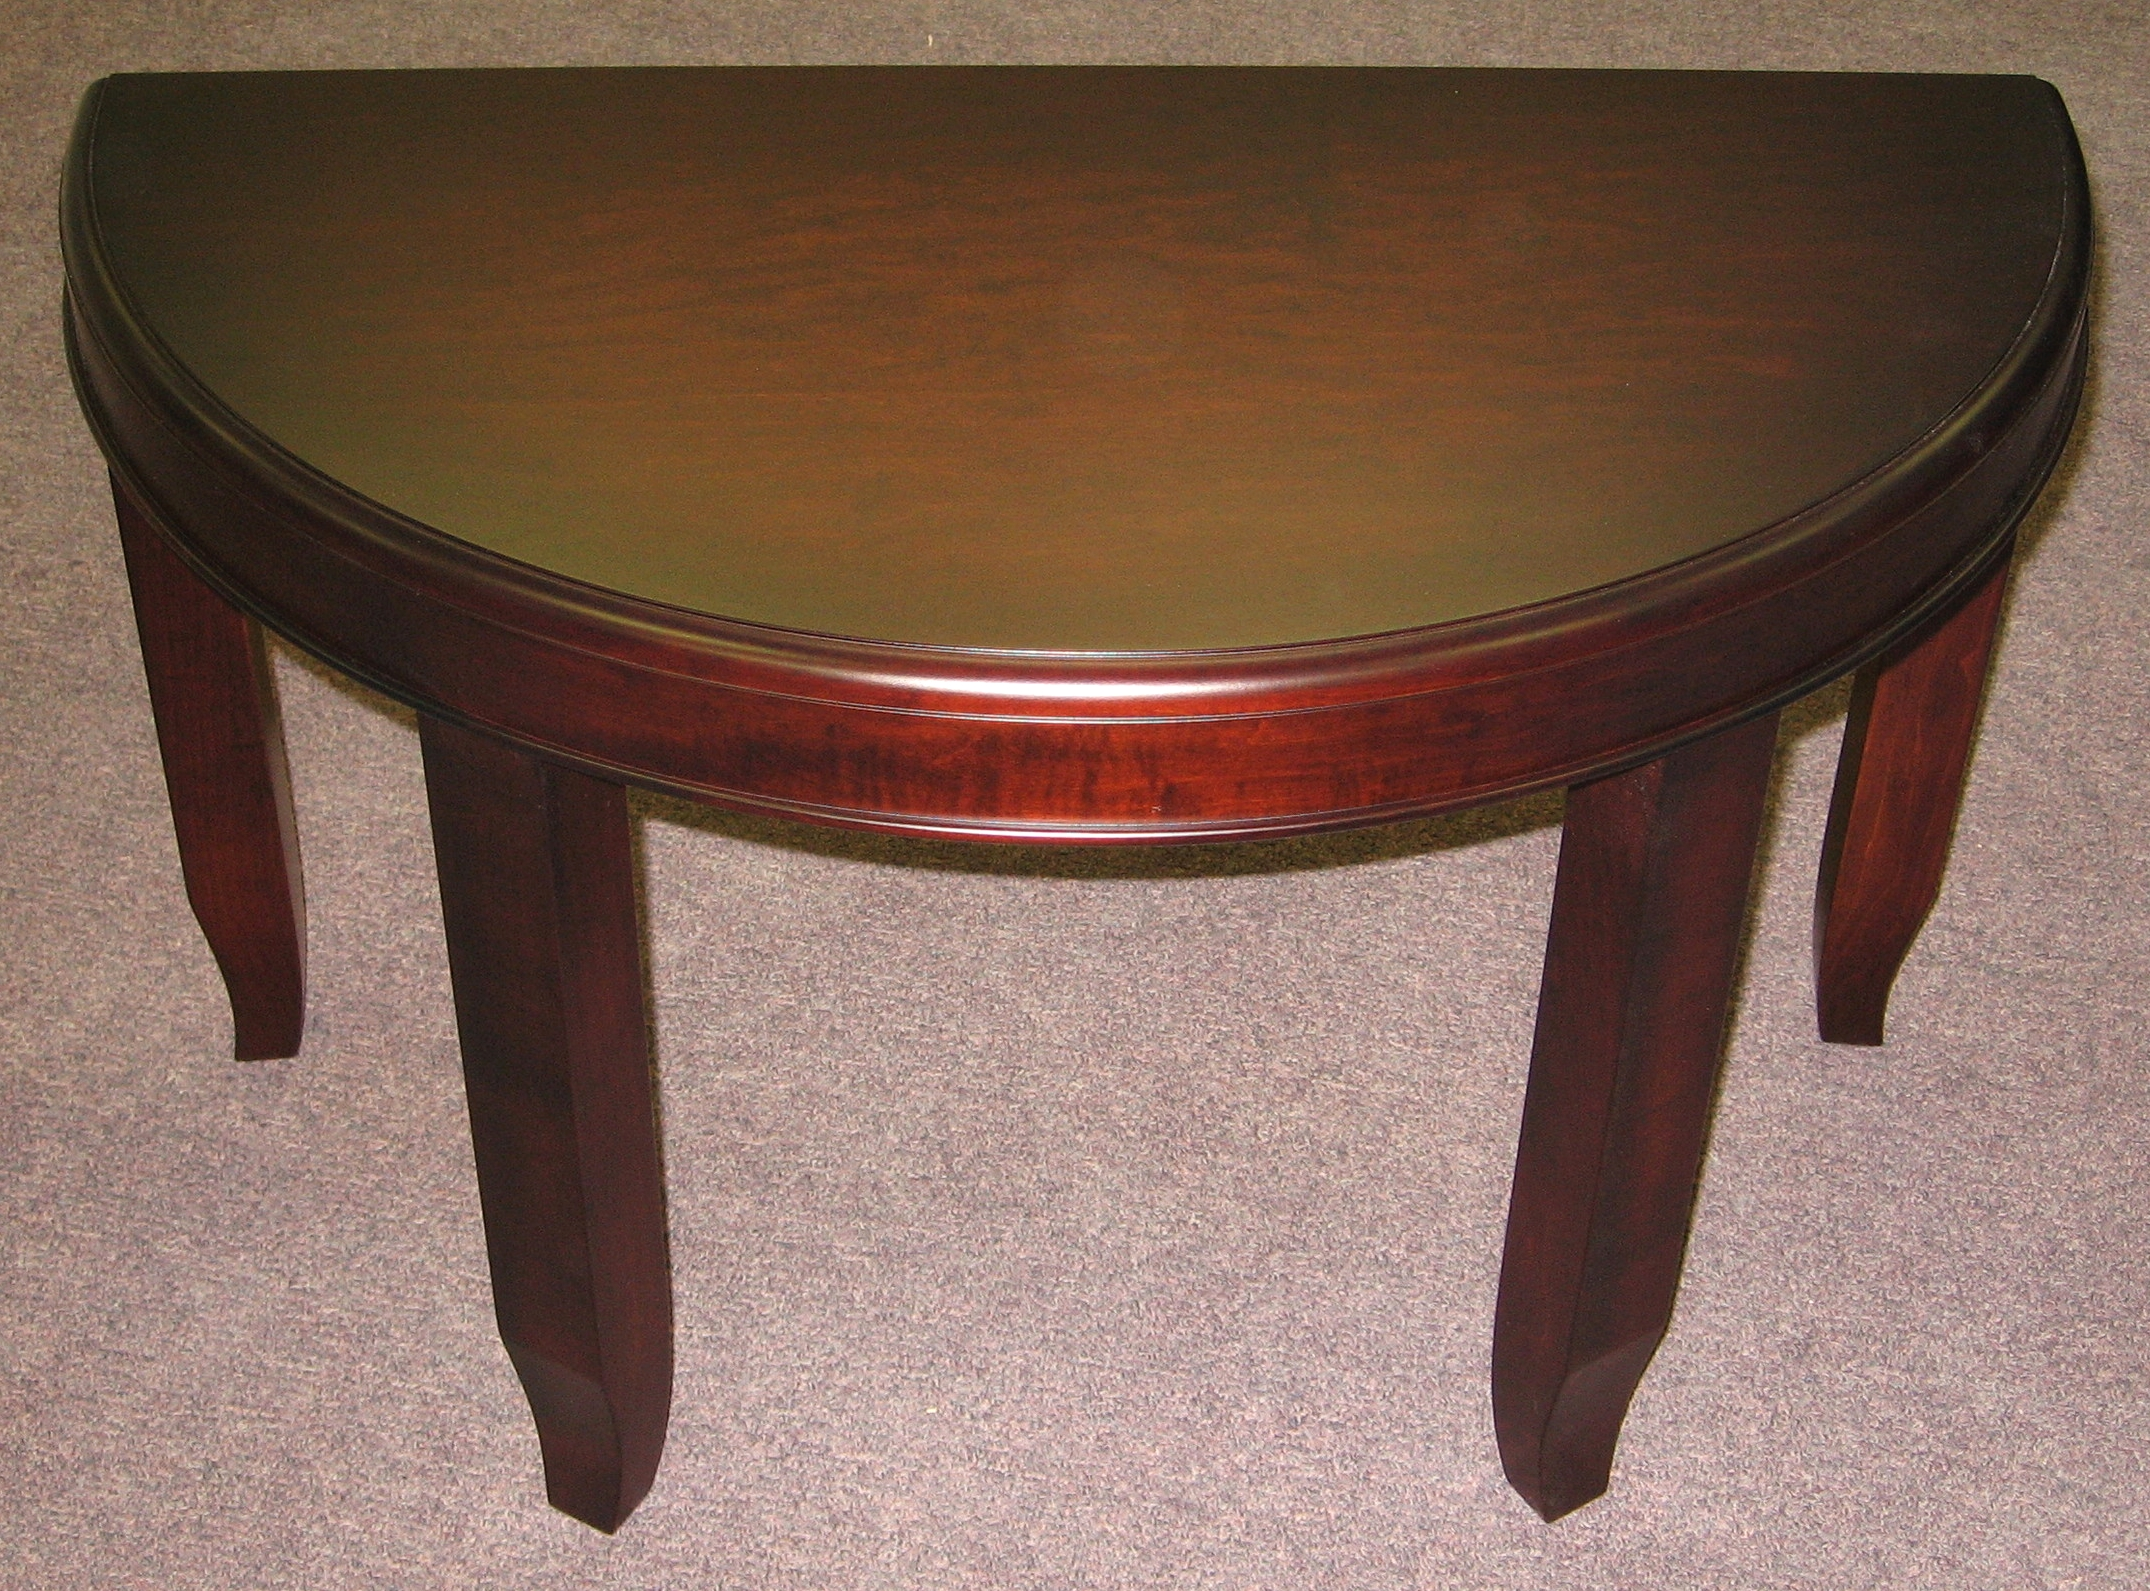 traditional-style-cherry-wood-demi-table.JPG